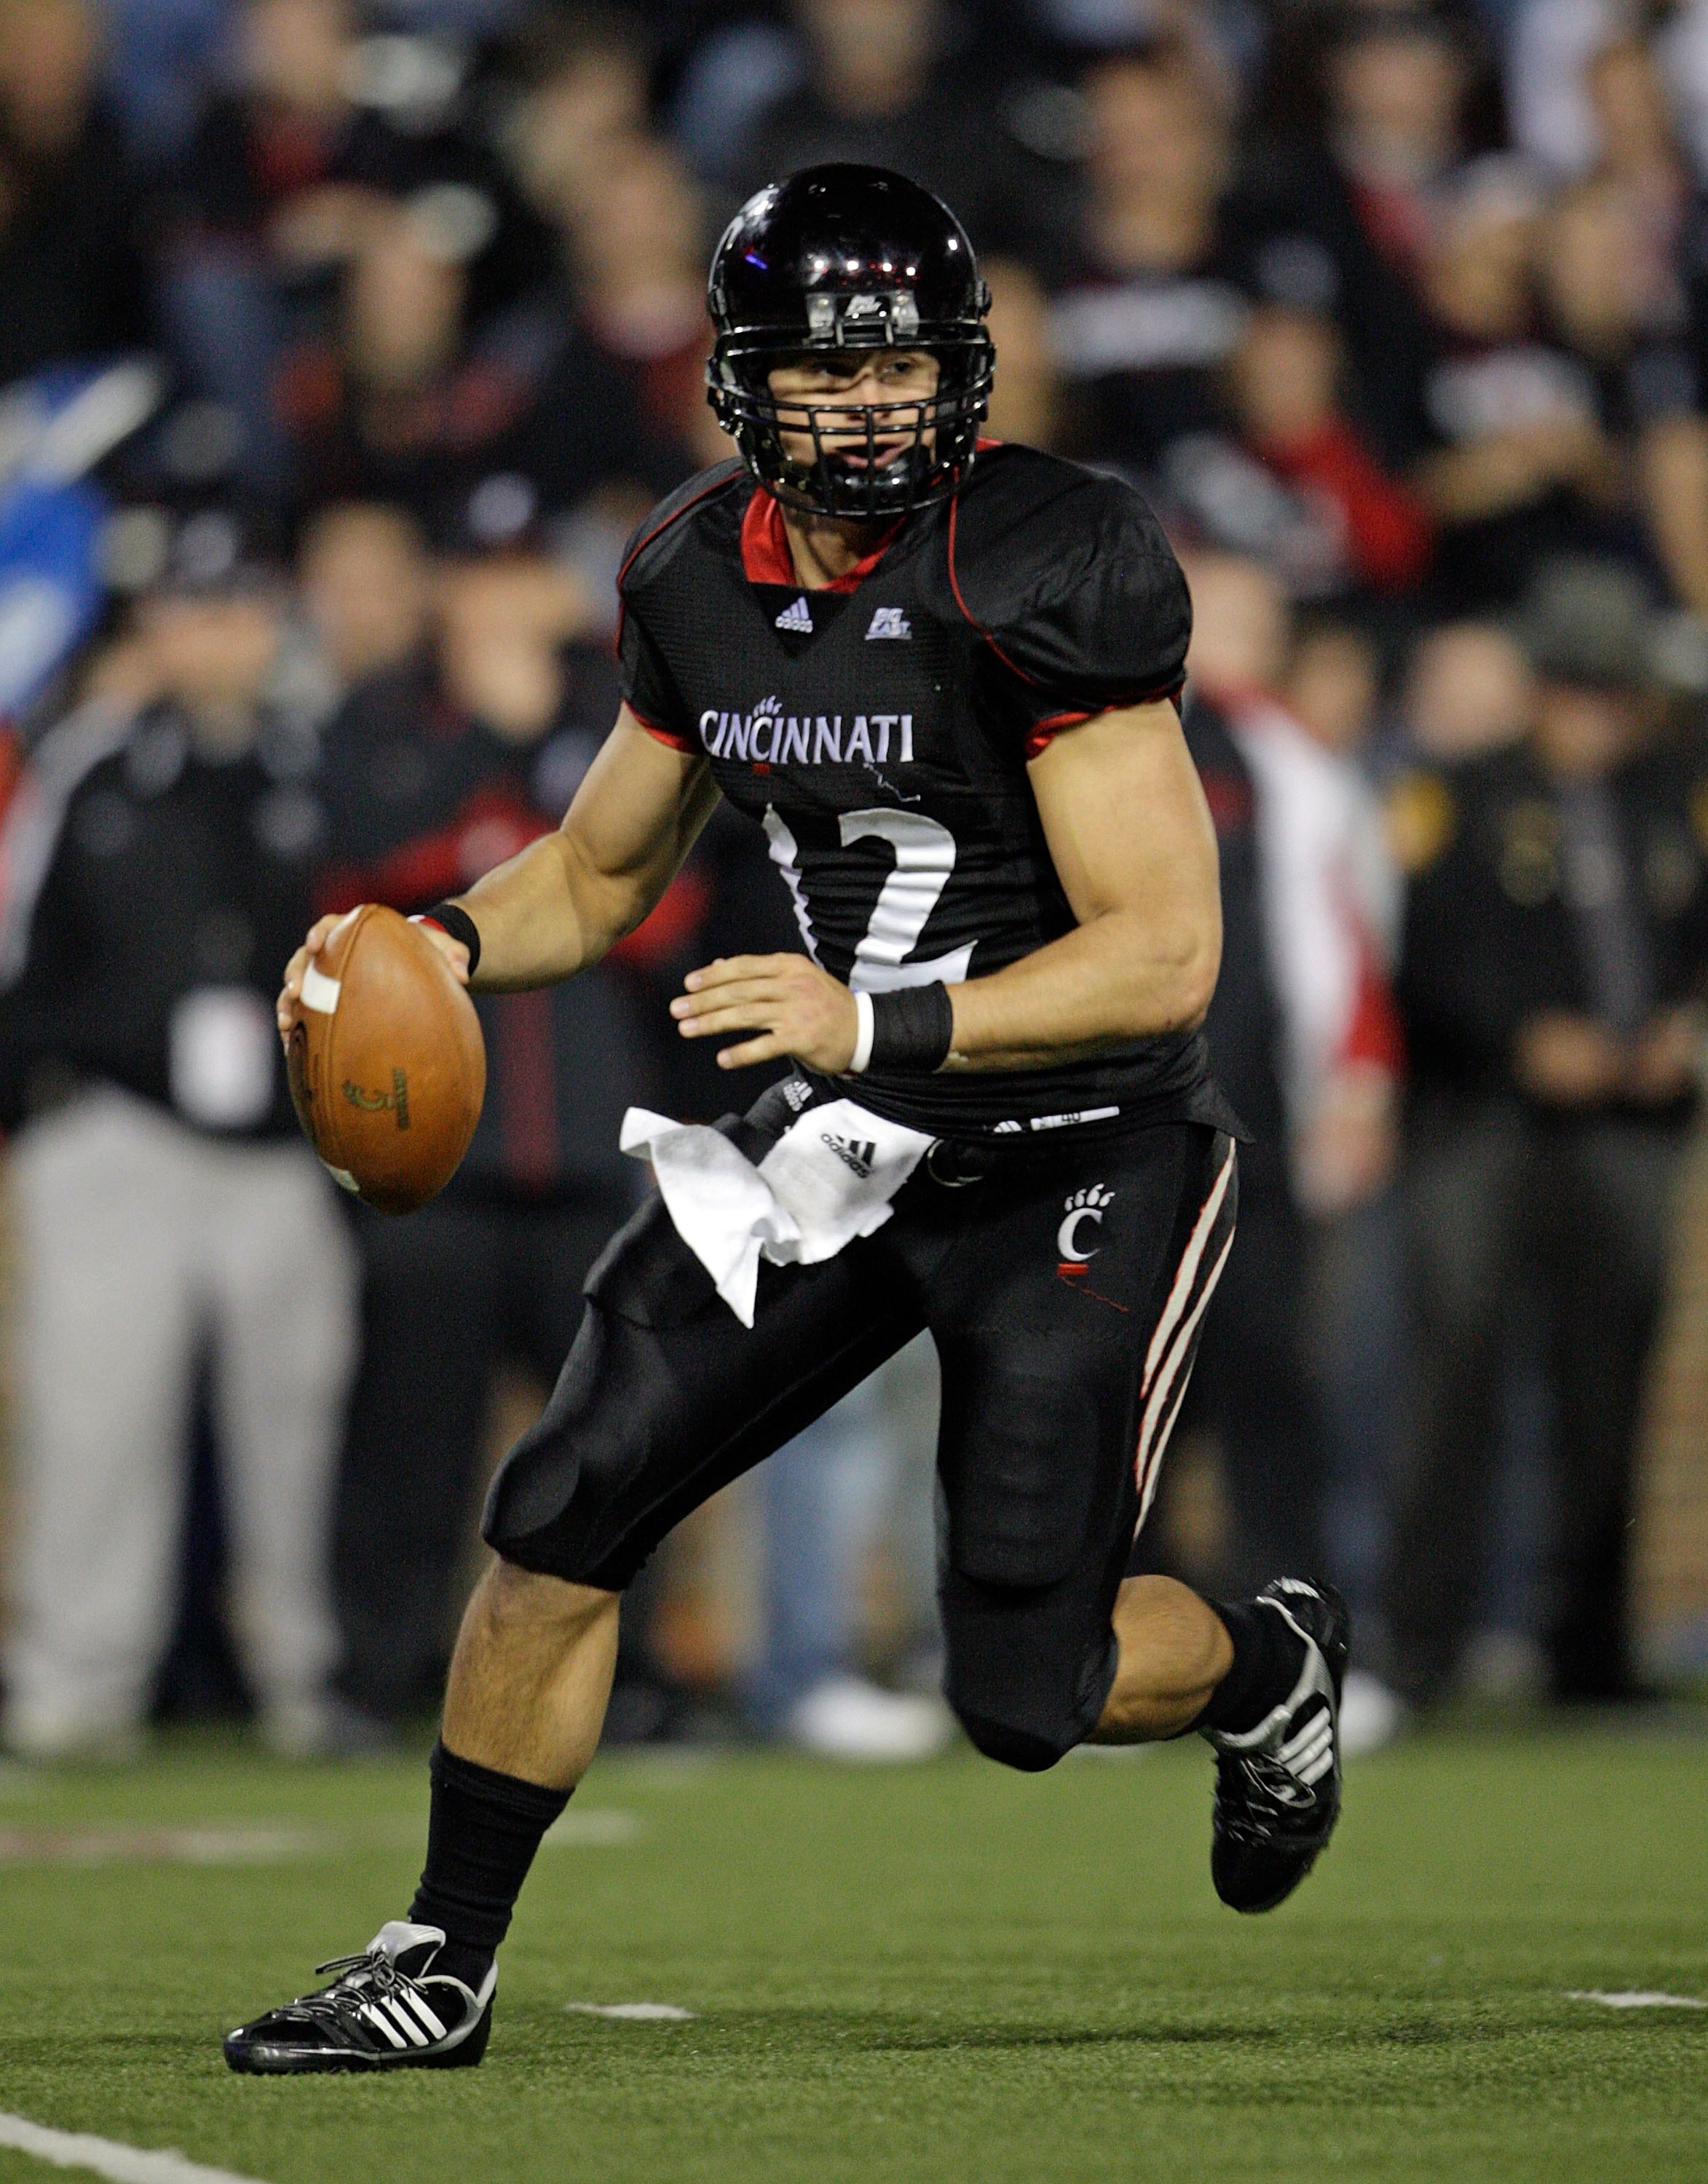 CINCINNATI - NOVEMBER 07:  Zach Collaros #12 of the Cincinnati Bearcats runs with the ball against the Connecticut Huskies during the Big East Conference game at Nippert Stadium on November 7, 2009 in Cincinnati, Ohio.  (Photo by Andy Lyons/Getty Images)